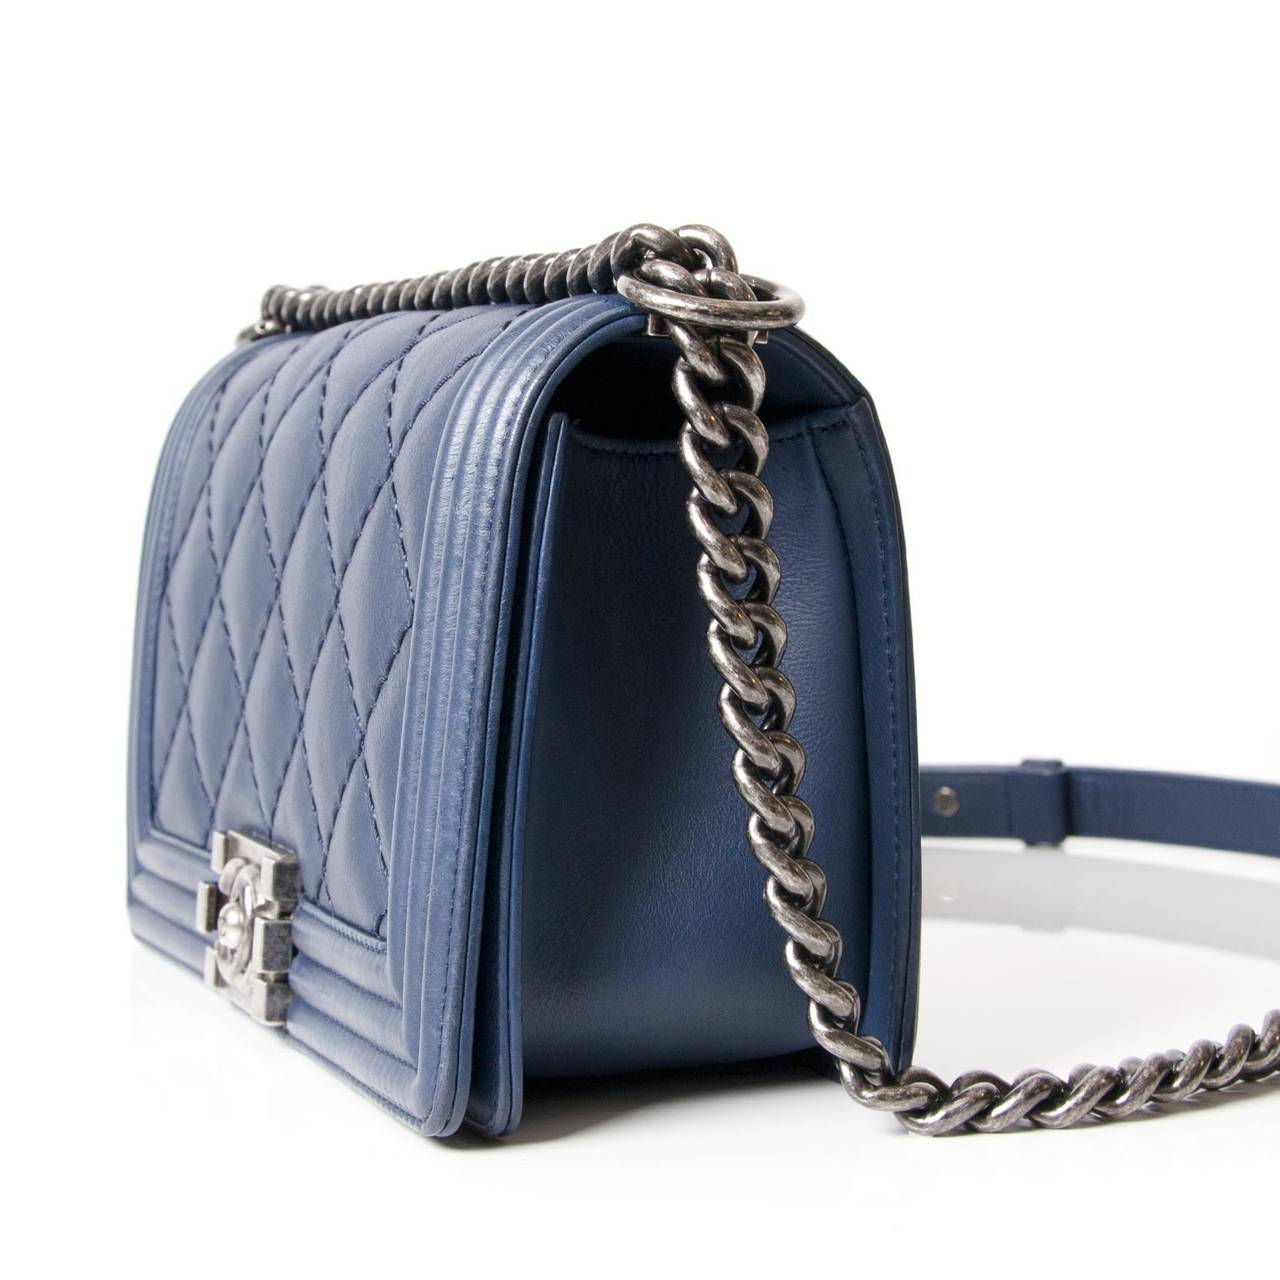 Blue Chanel Lambskin Medium Quilted boy bag. The dark blue Chanel Boy  Quilted Flap Bag 2af2d40de60e